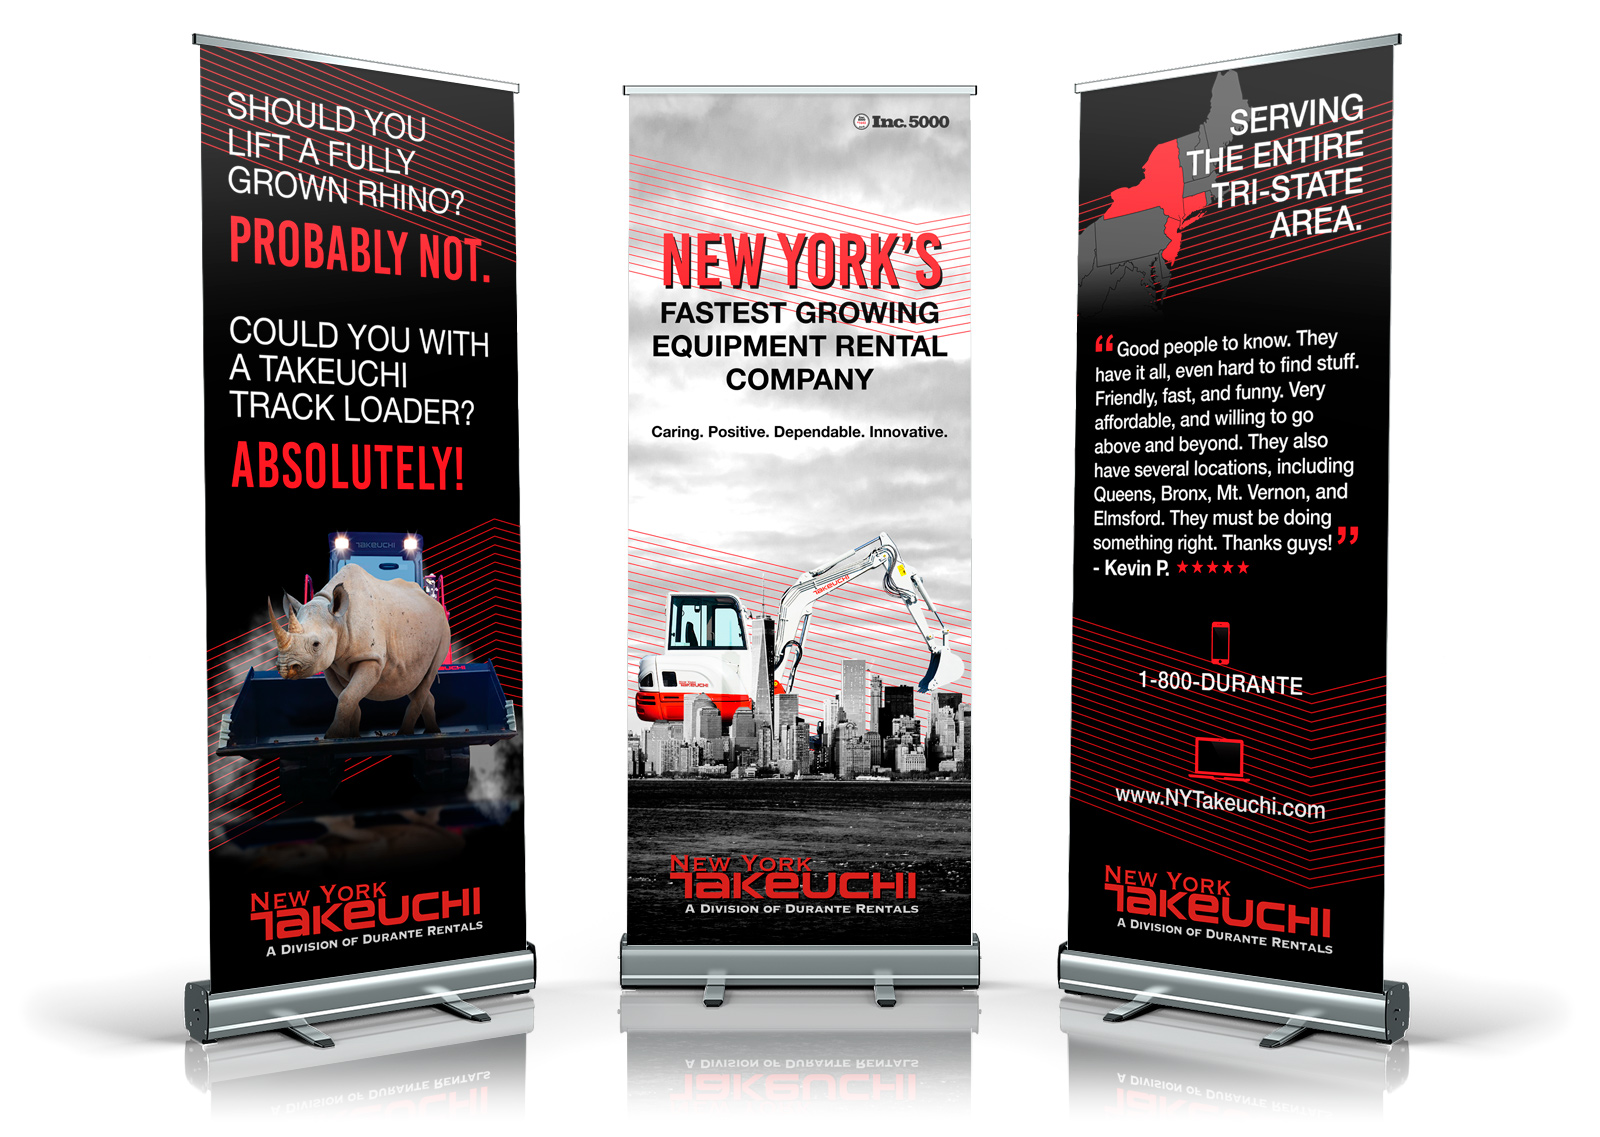 Takeuchi 3 Roll up banner design